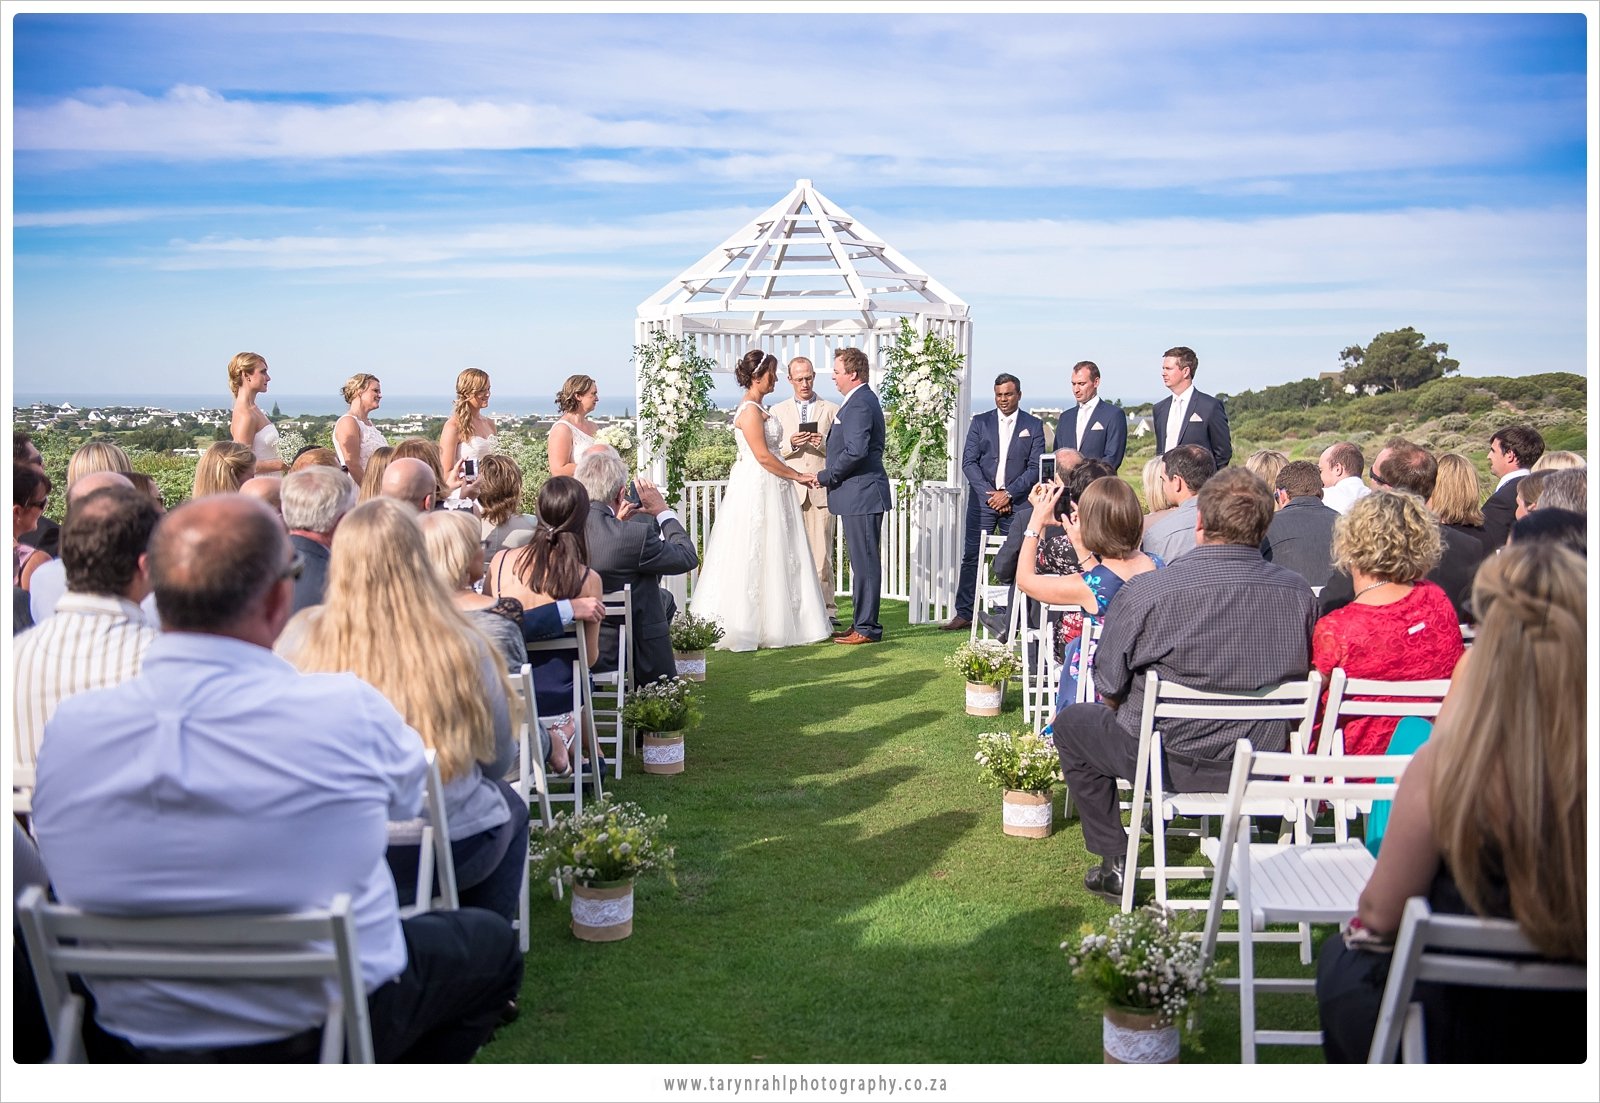 Karla and Cuan | Wedding at St Francis Links